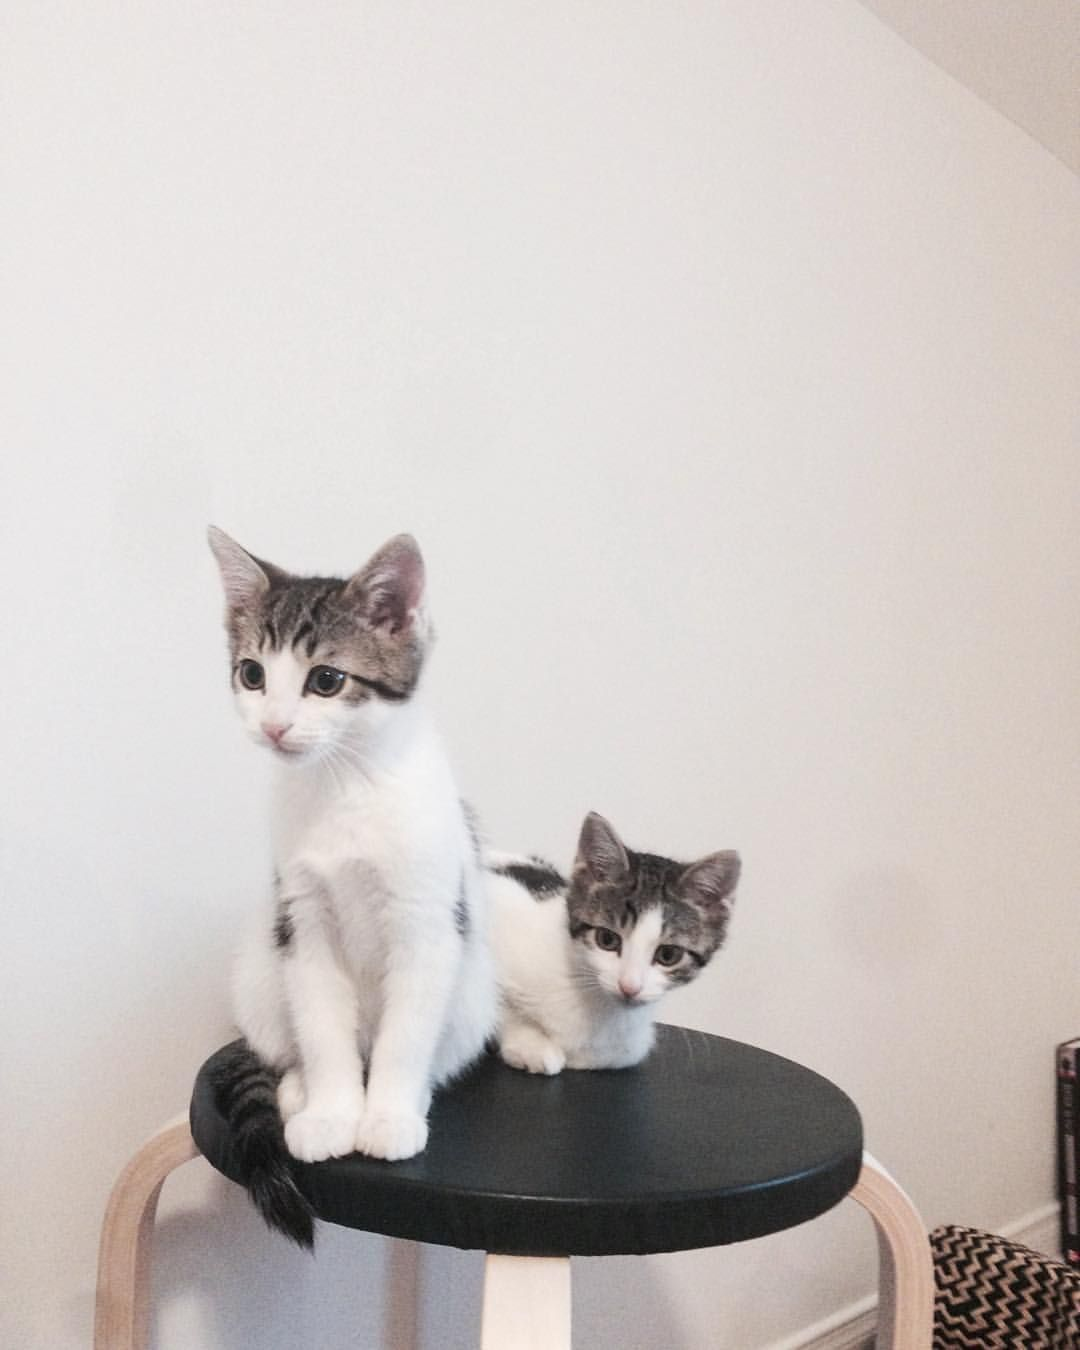 Burger And Fry How Sweet Are These Little Boys I Wish They Could Stay Together Forever And Also Never Grow Up Or Foster Kittens Tabby Kitten Foster Cat